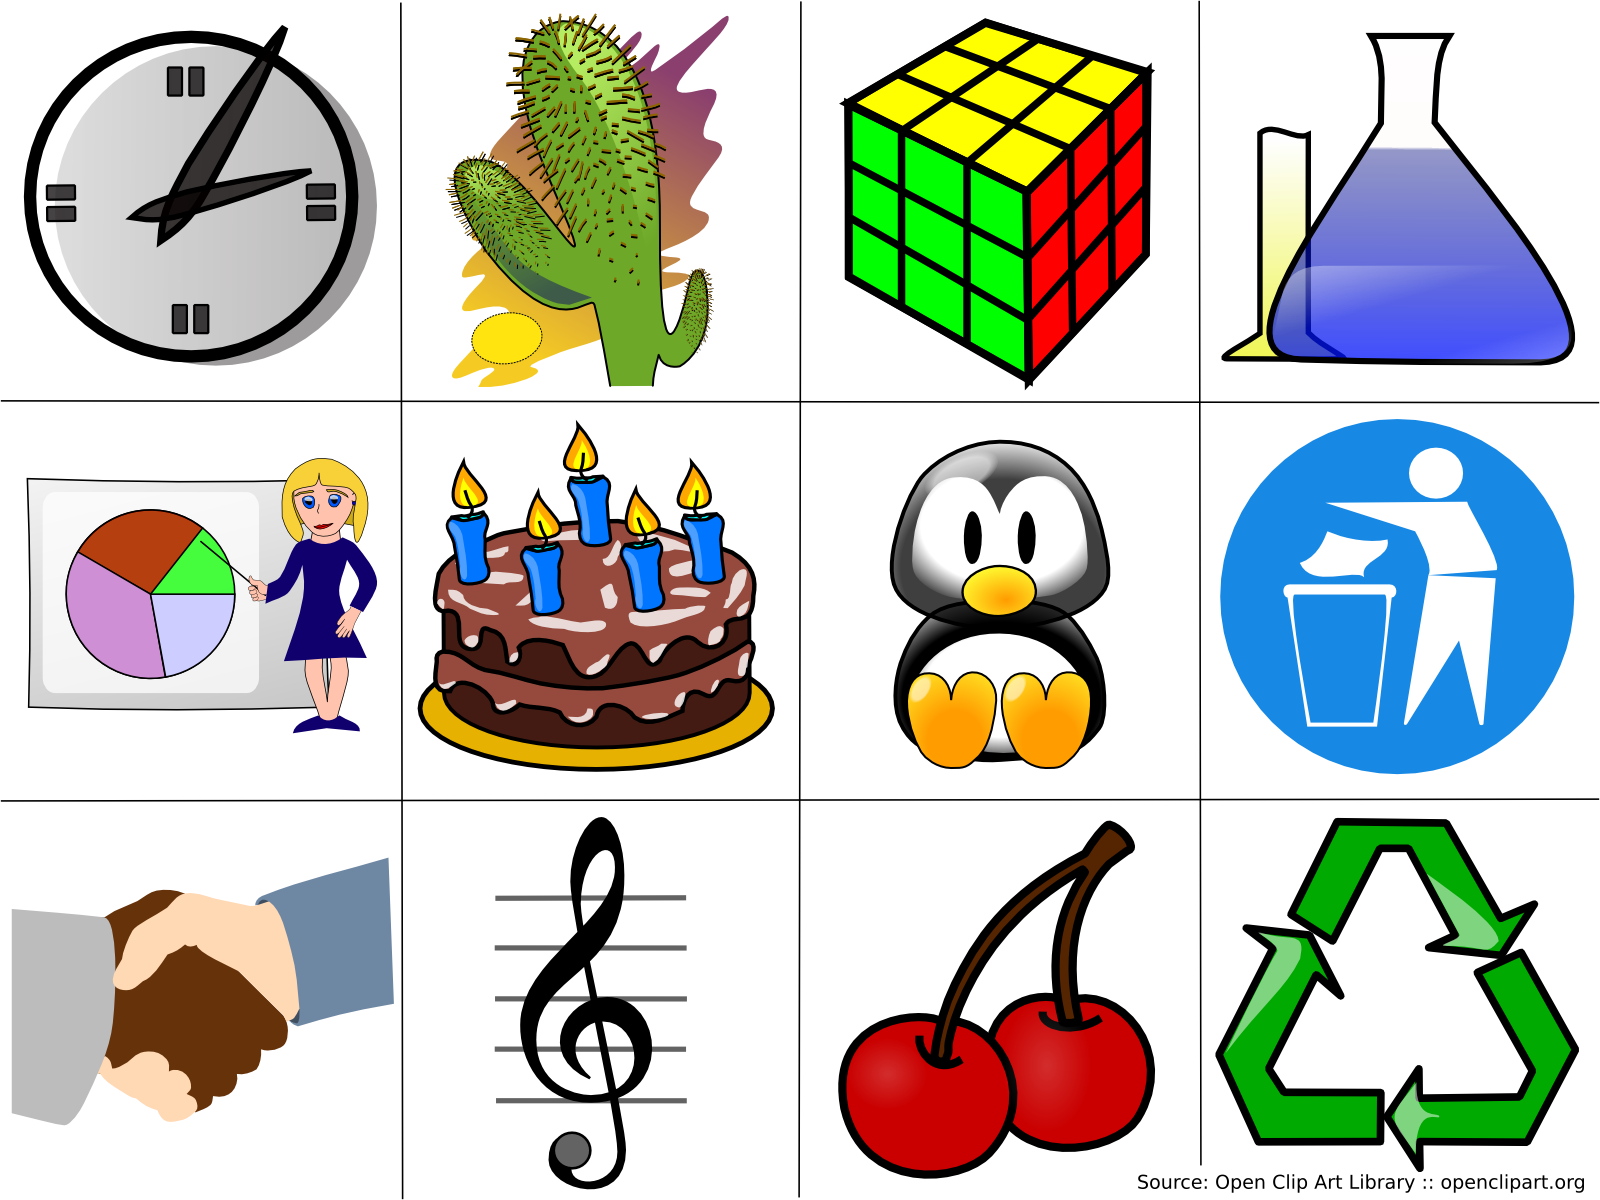 Clip art - Wikipedia, the free encyclope-Clip art - Wikipedia, the free encyclopedia-13